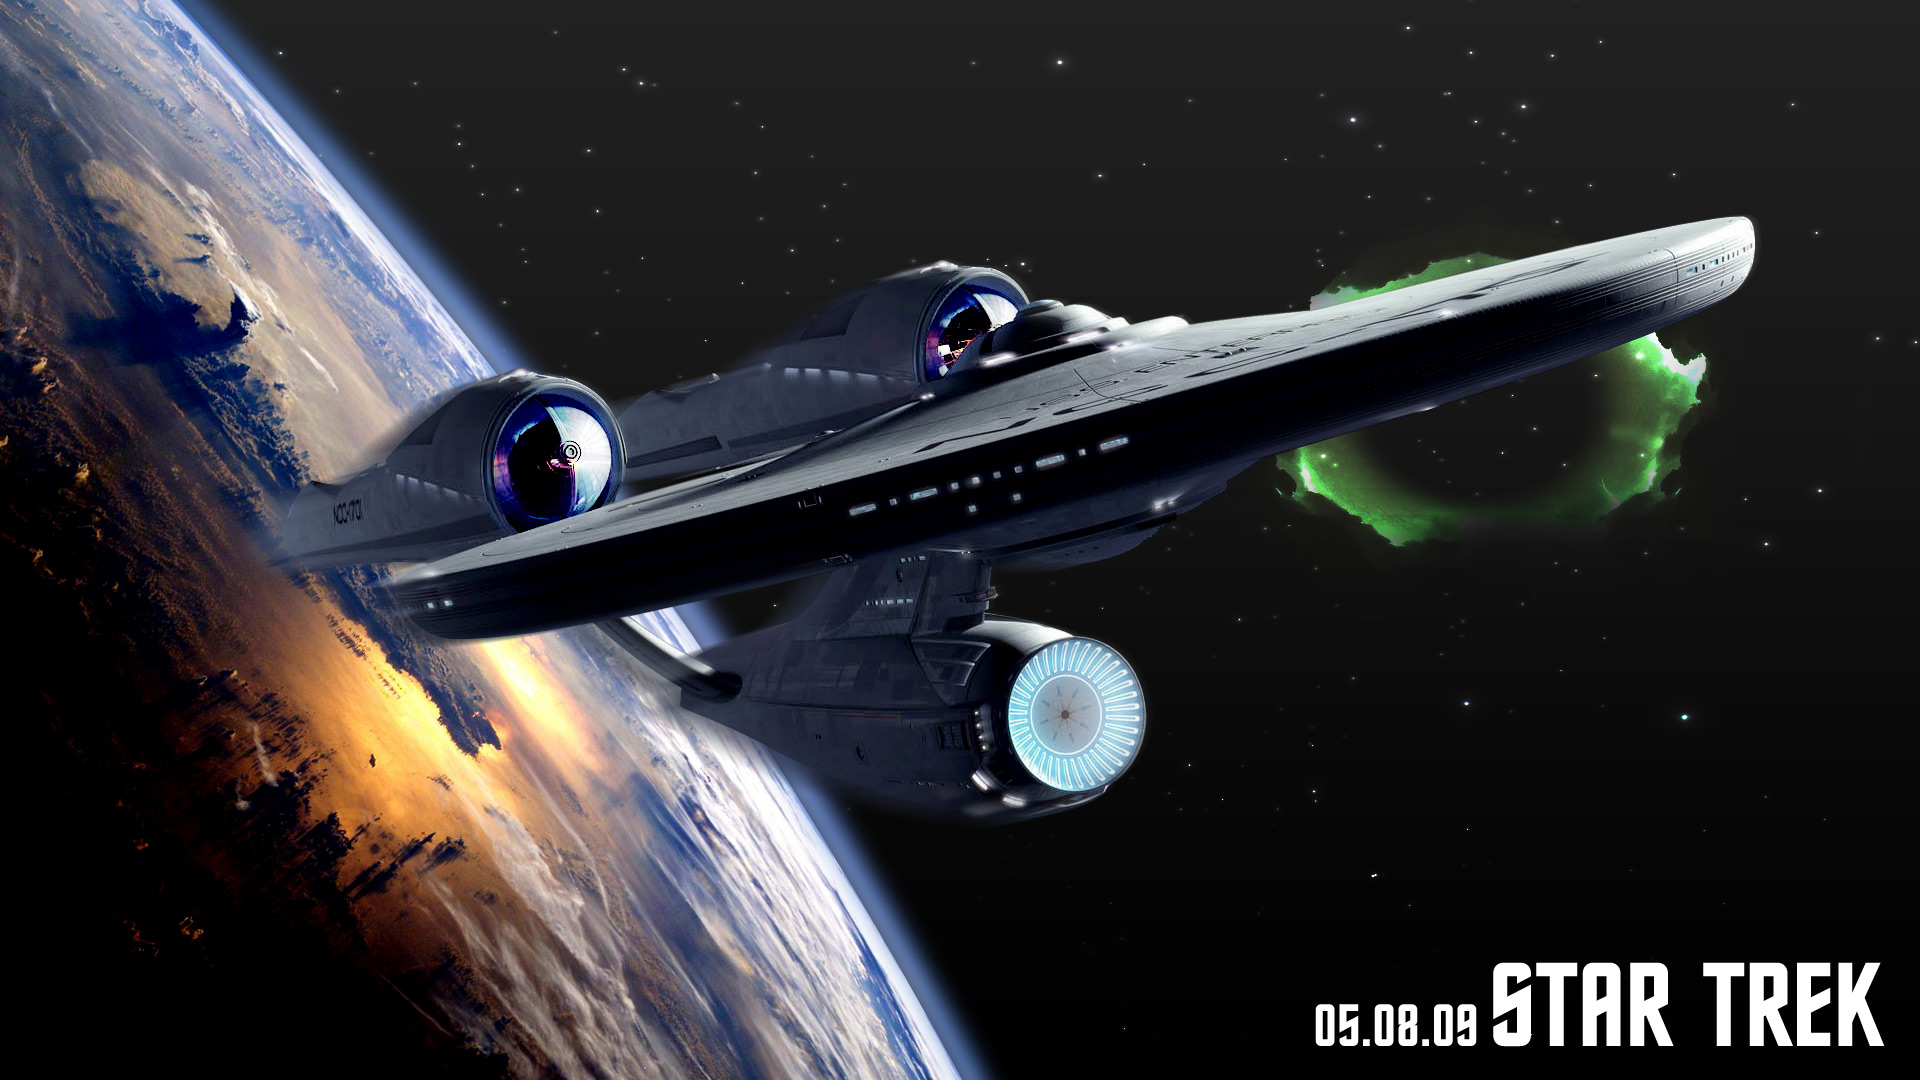 android star trek wallpaper 1920x1080 - photo #46